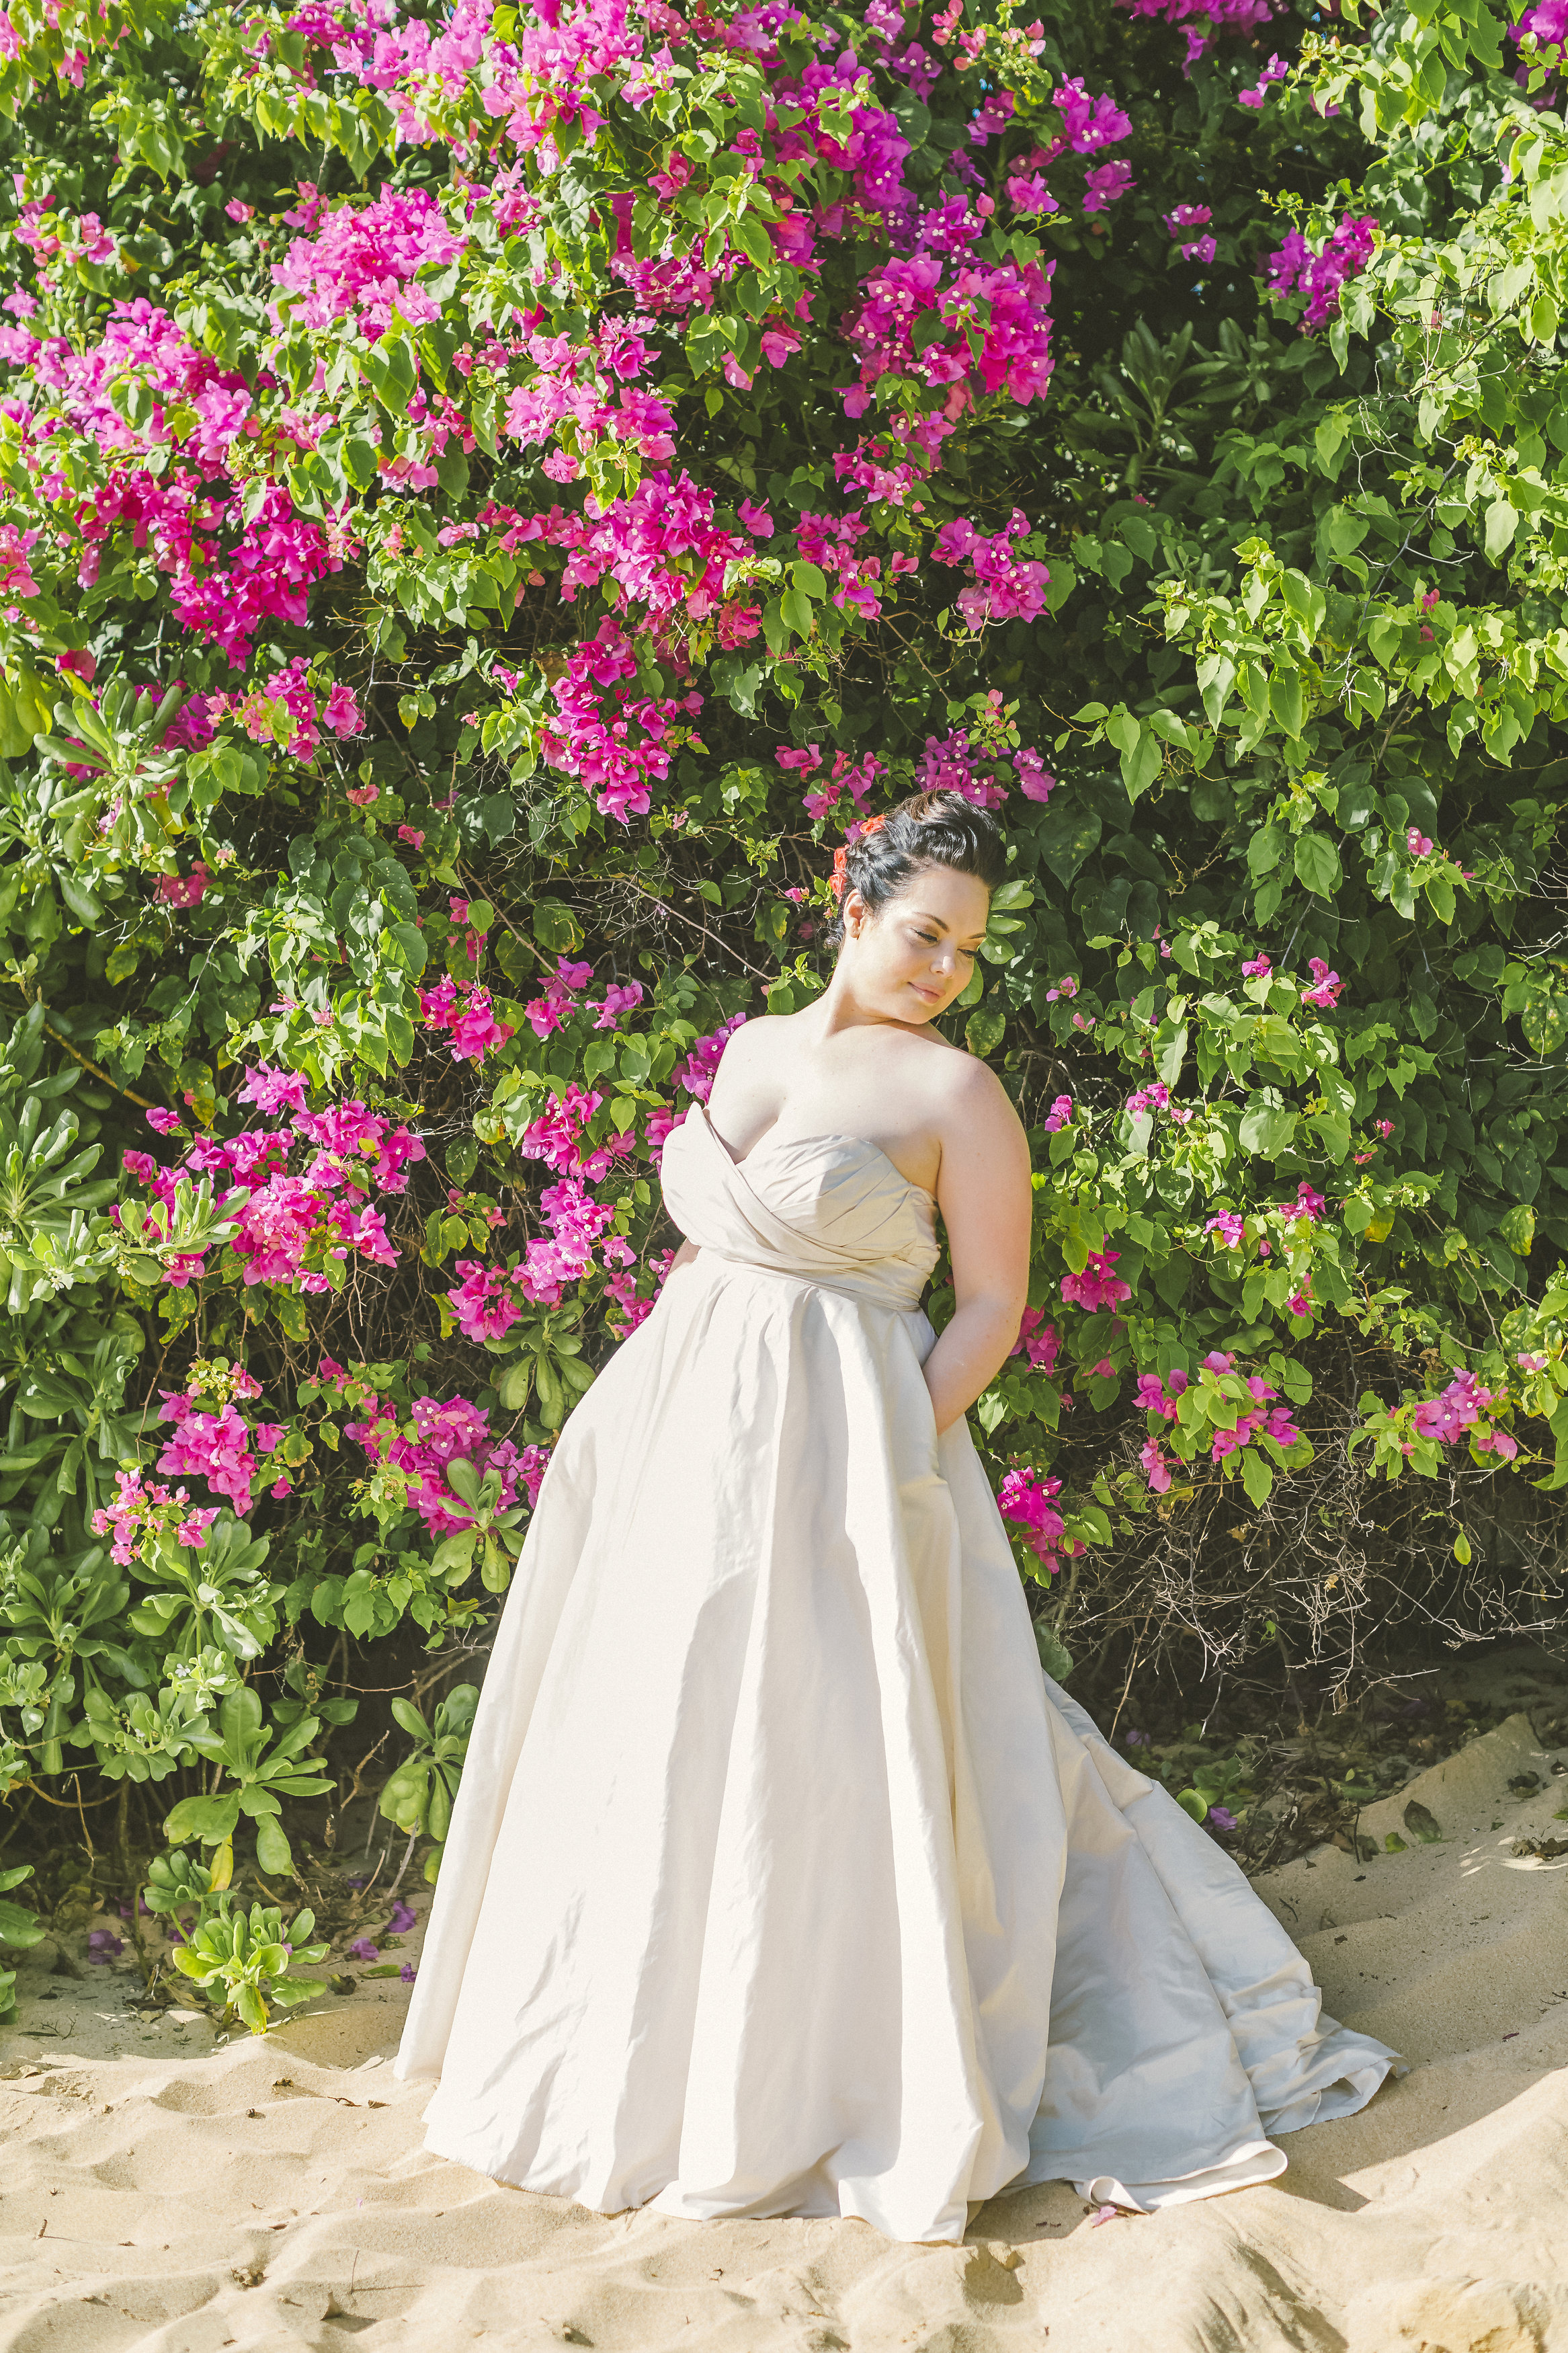 angie-diaz-photography-maui-elopement-42.jpg